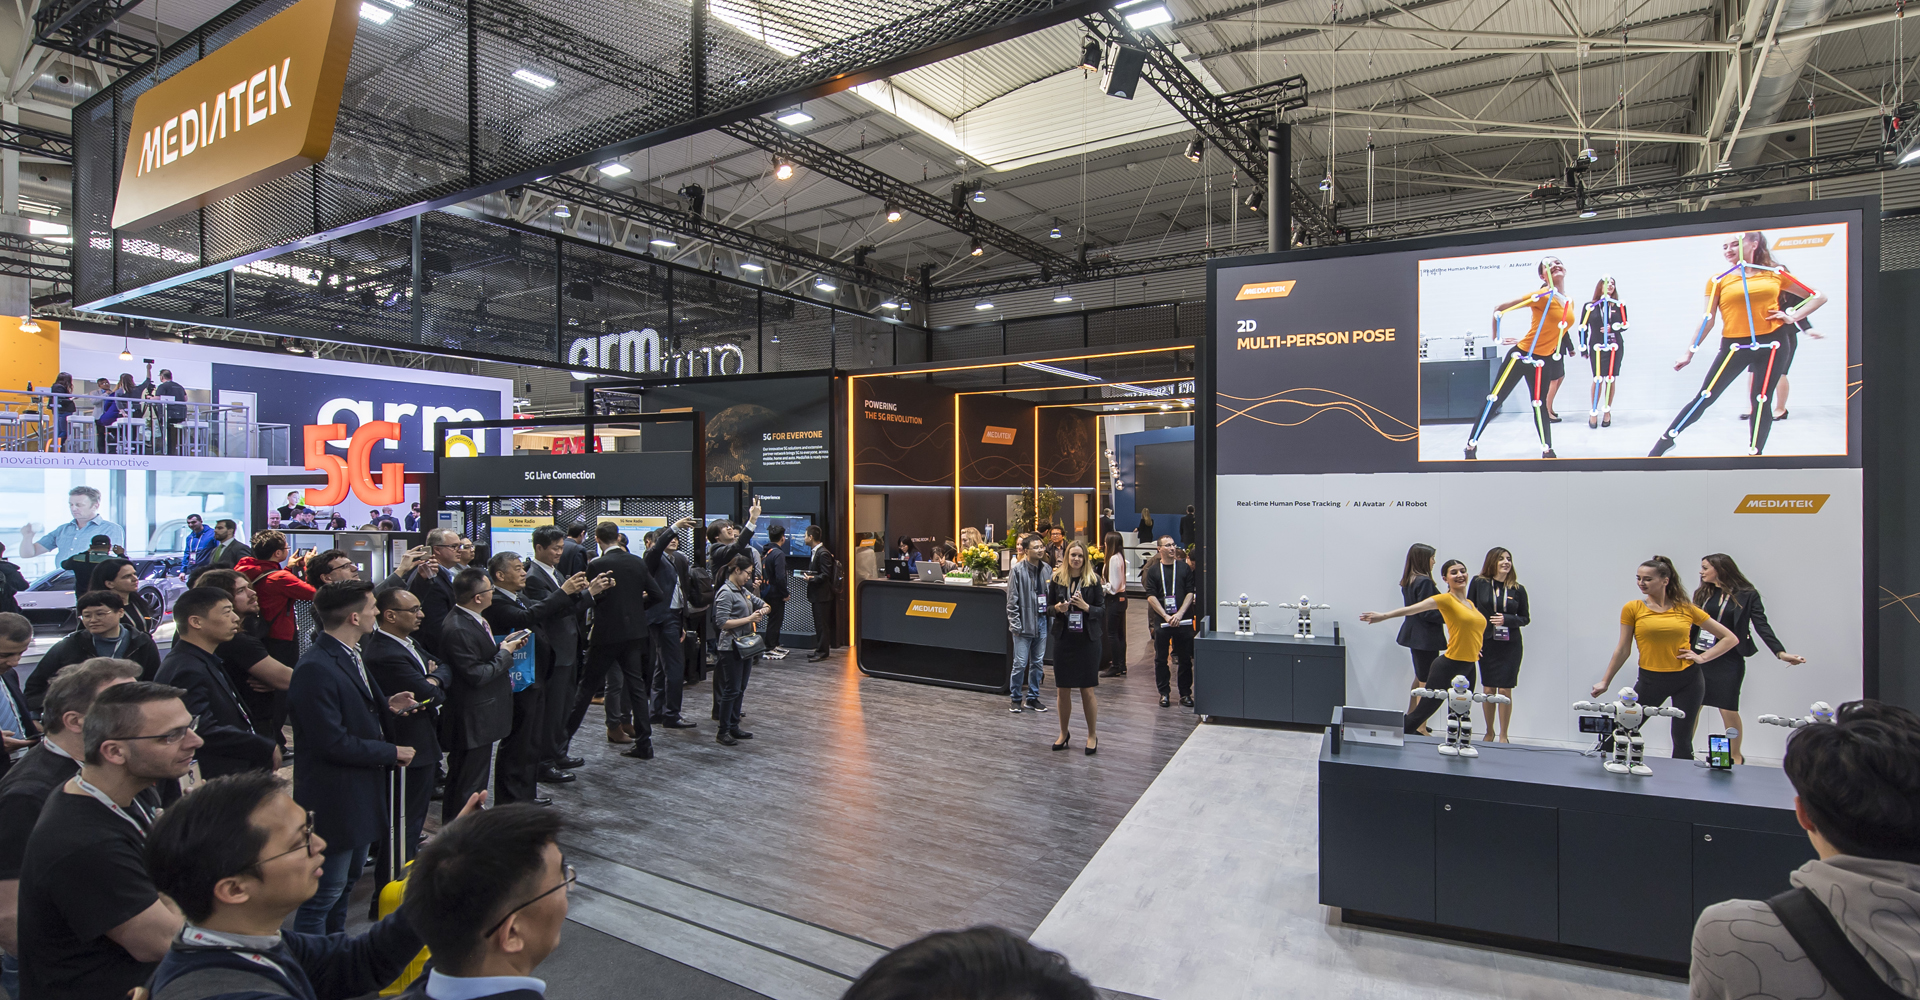 Mediatek with trade show marketing hosting events technology by MCCGLC